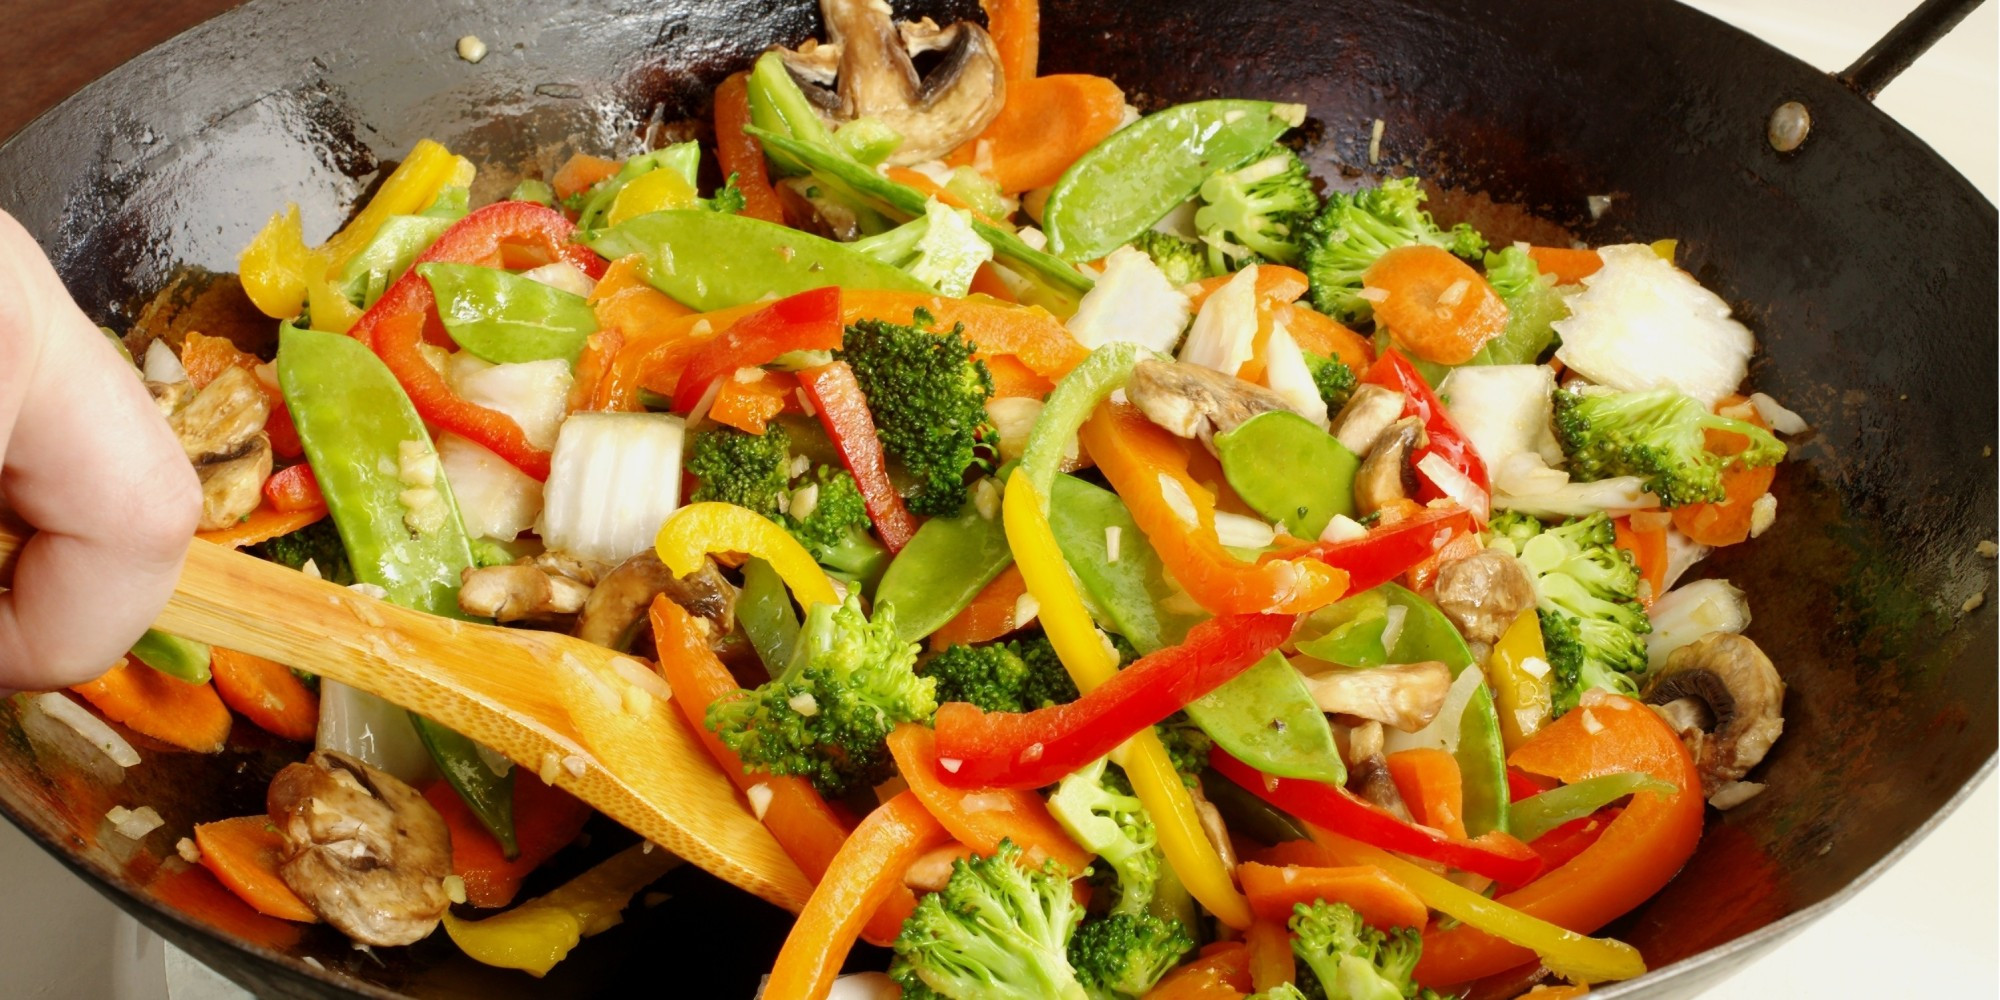 Chinese Stir Fry Recipes  Better Than Take Out 5 Easy Asian Stir Fry Recipes